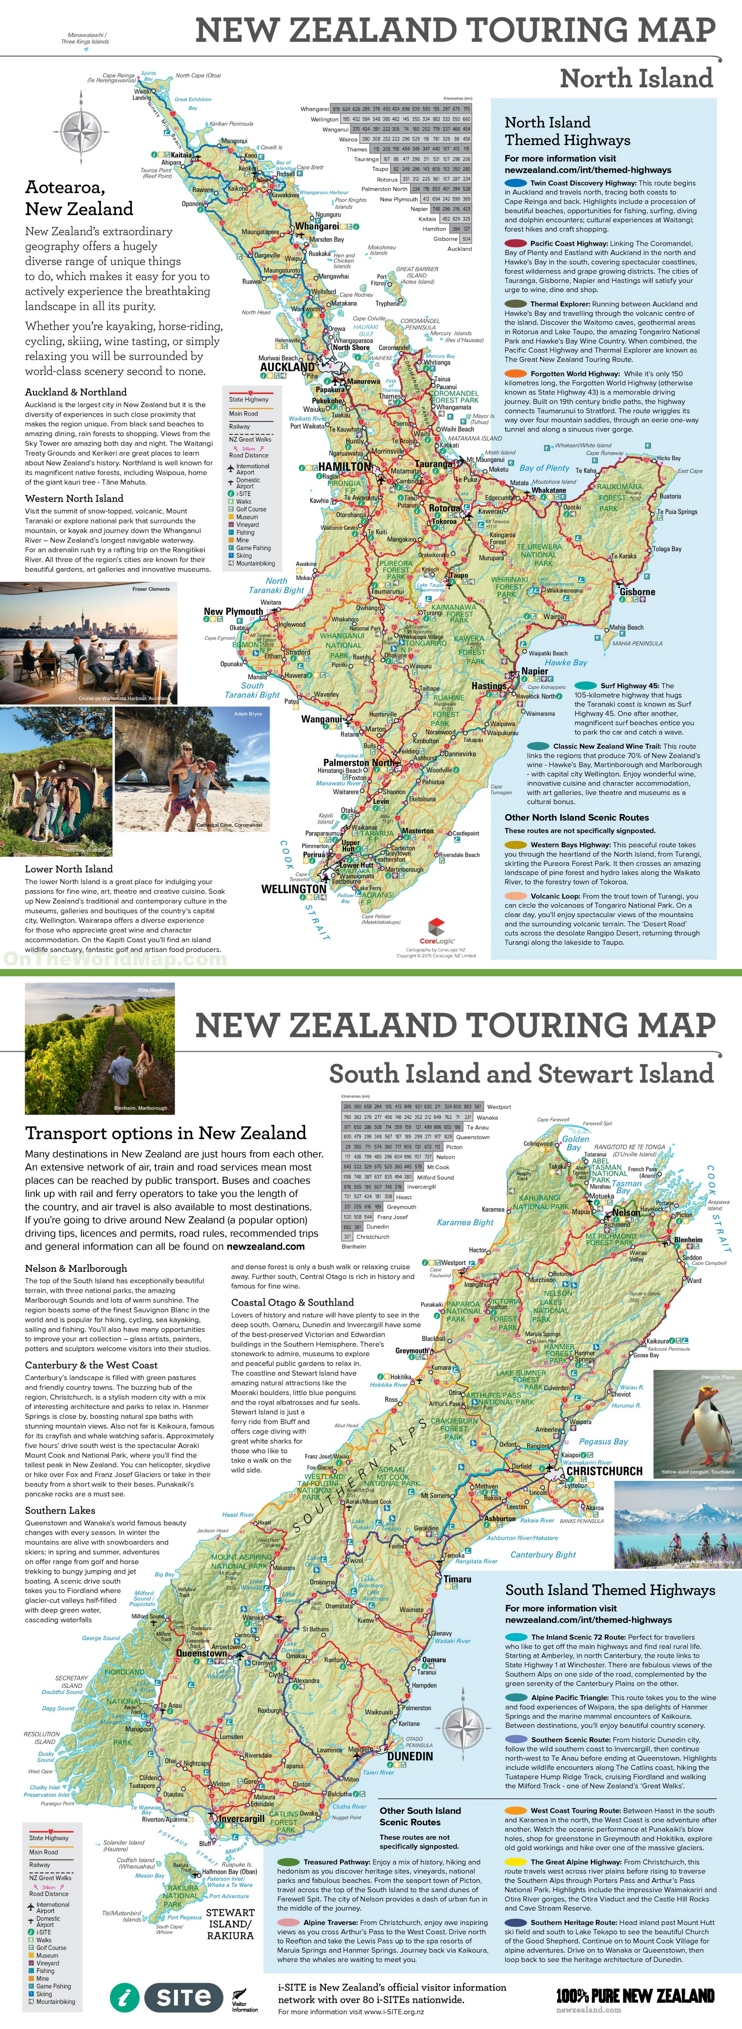 New Zealand North Island Tourist Map